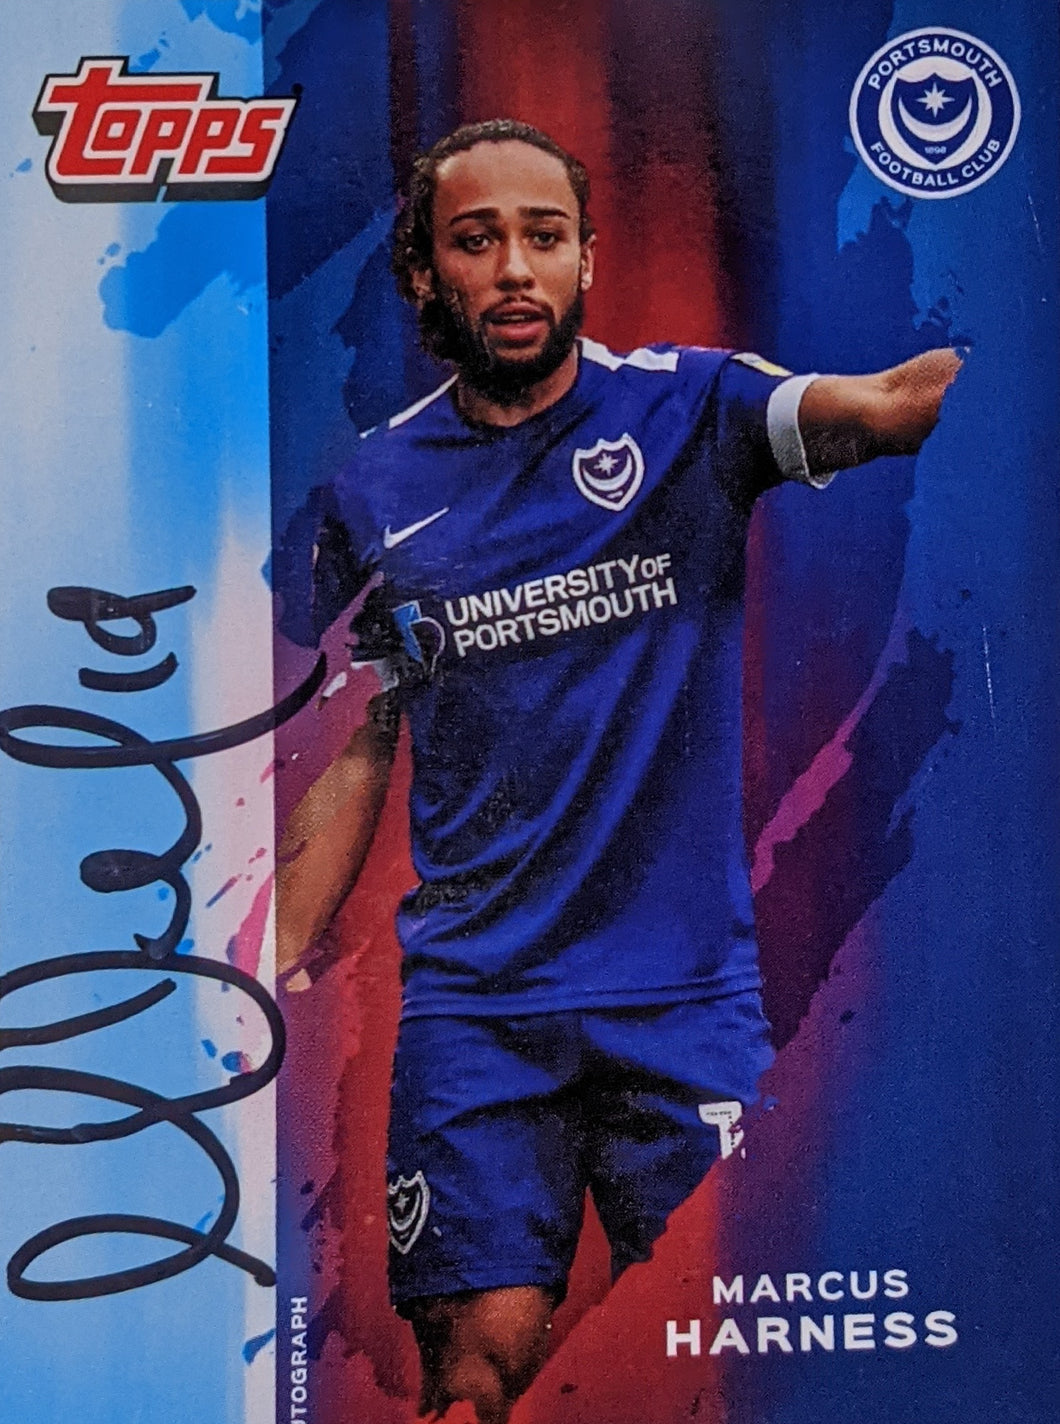 Marcus Harness 2019/20 Signed Topps Card